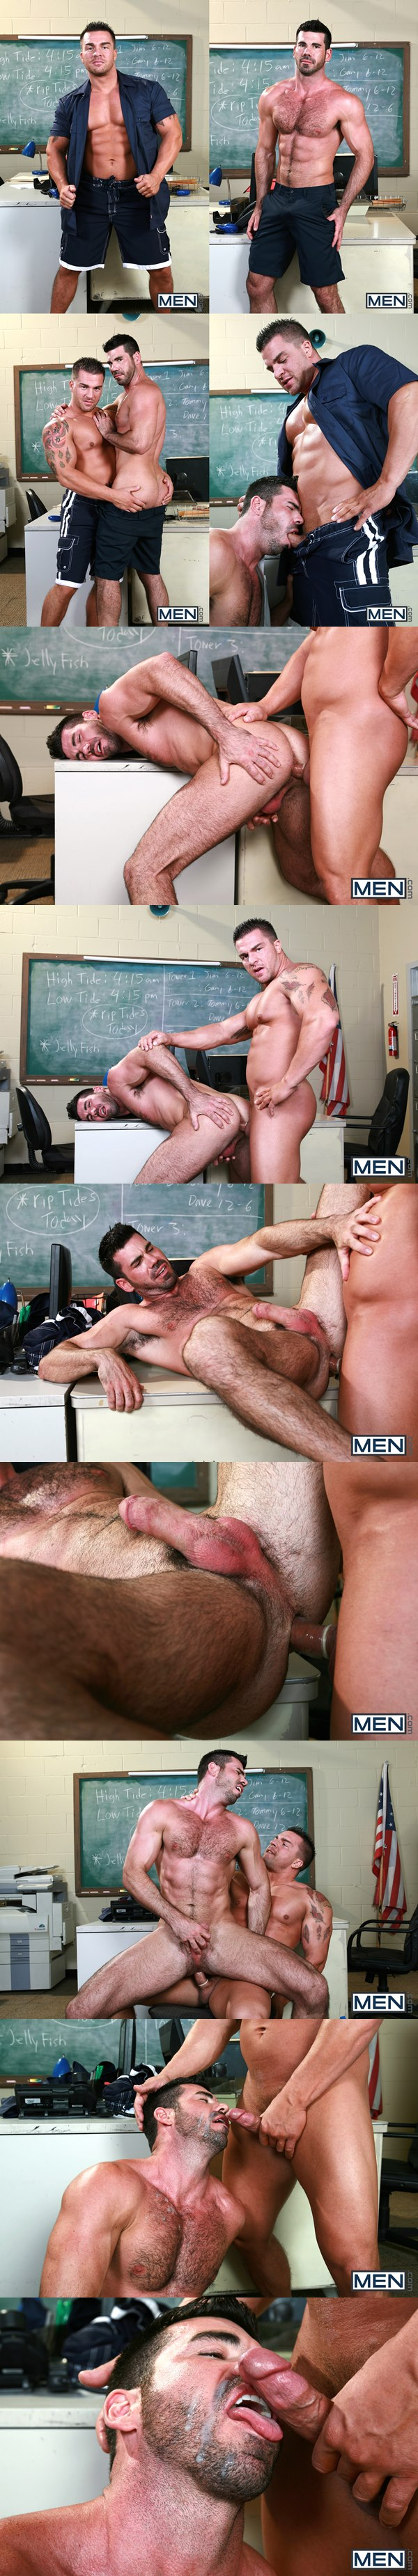 Masculine Braden Charron slams Billy Santoro's tight hairy muscle ass in Gaywatch Part 2 at Drillmyhole 02